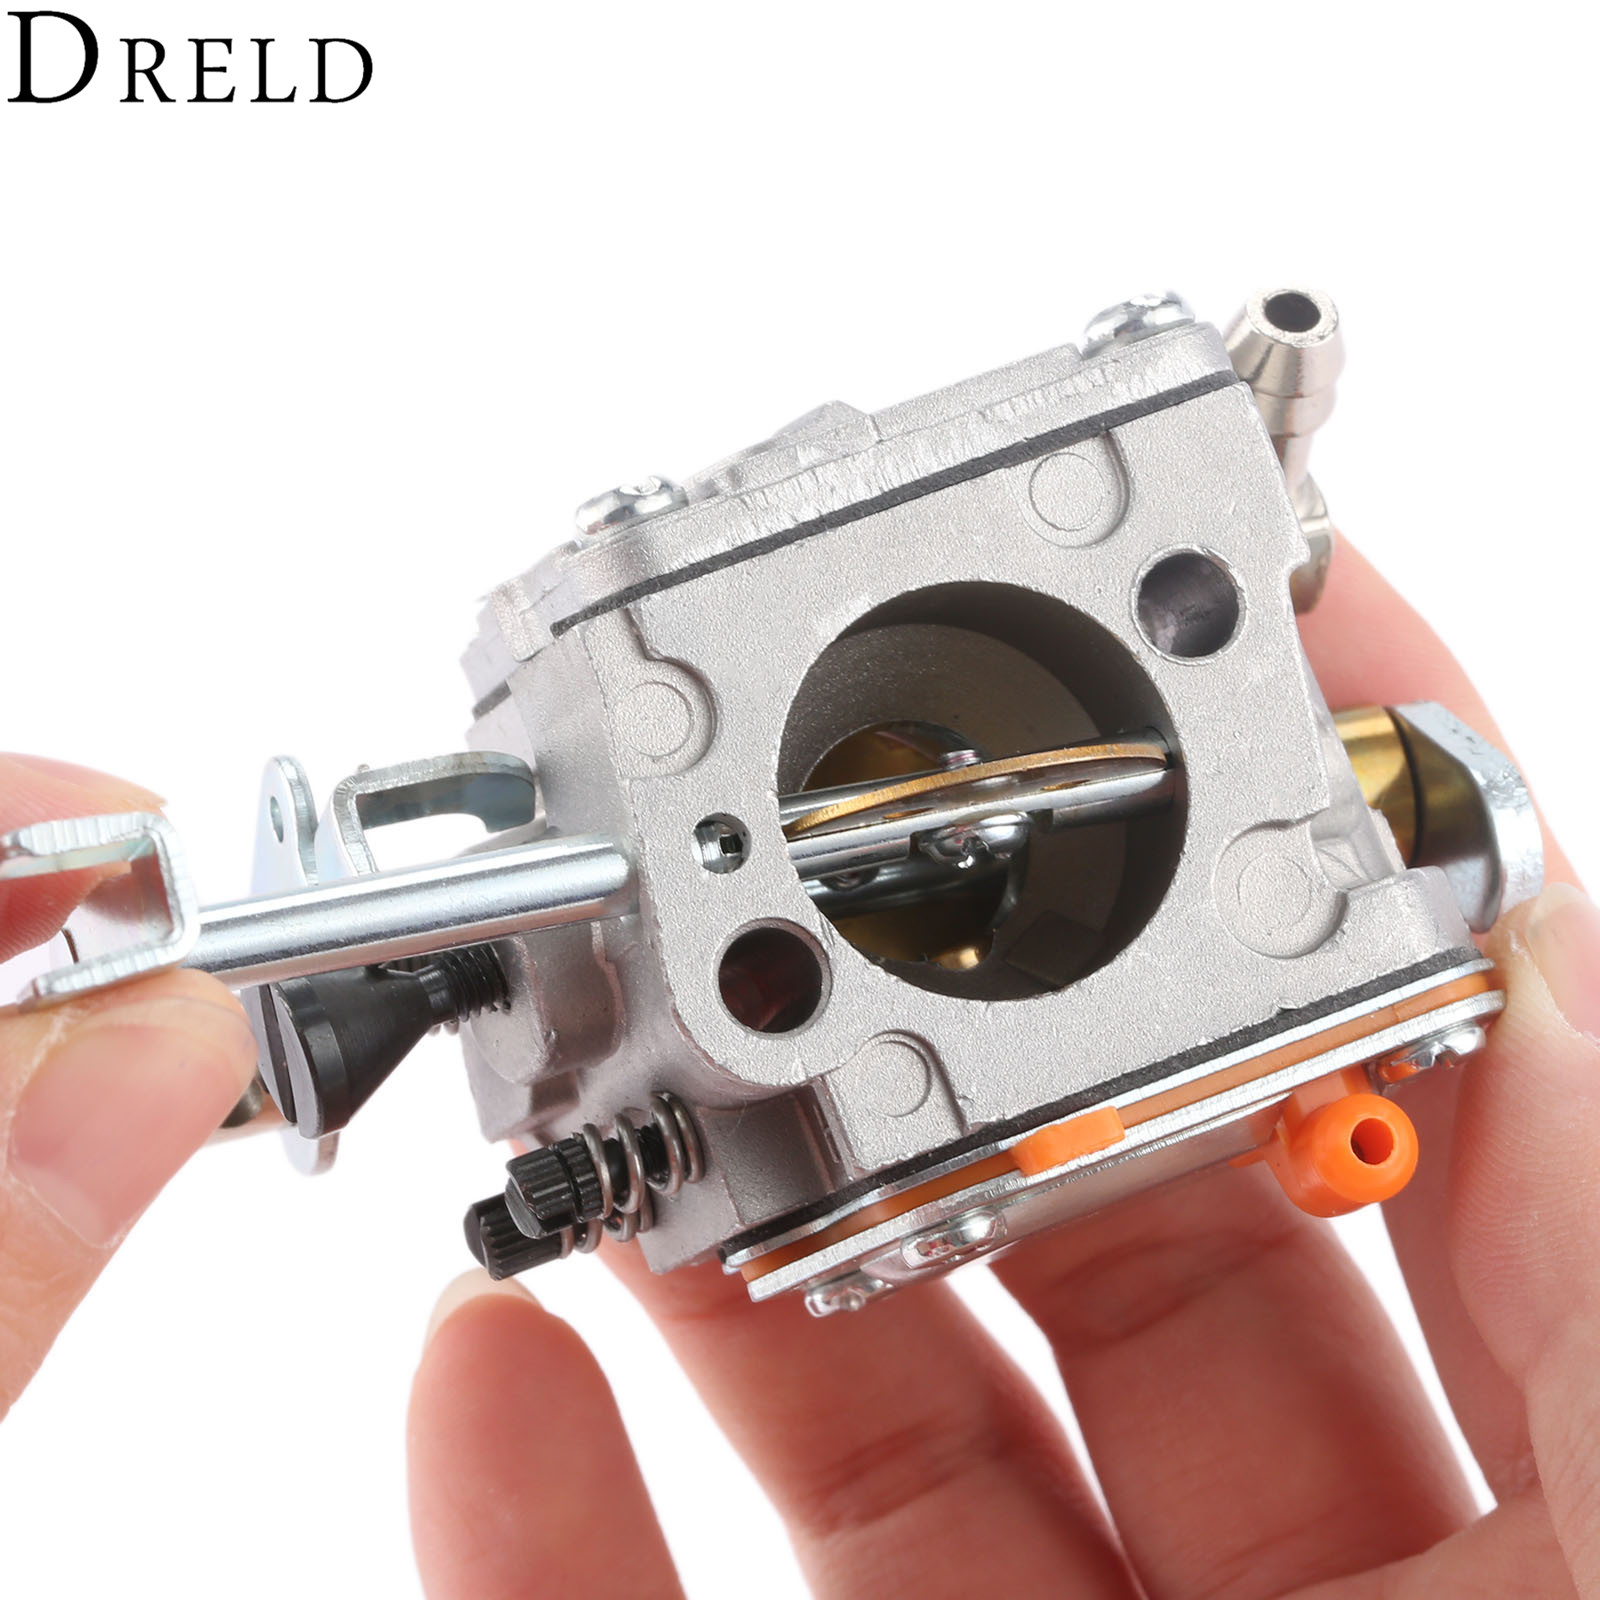 DRELD Carburetor Carb for Wacker Neuson WM80 BS600 BS650 BS700 BS600S BS50 2 BS60 2 BS70 2 Trimmers Brush Cutters Engine